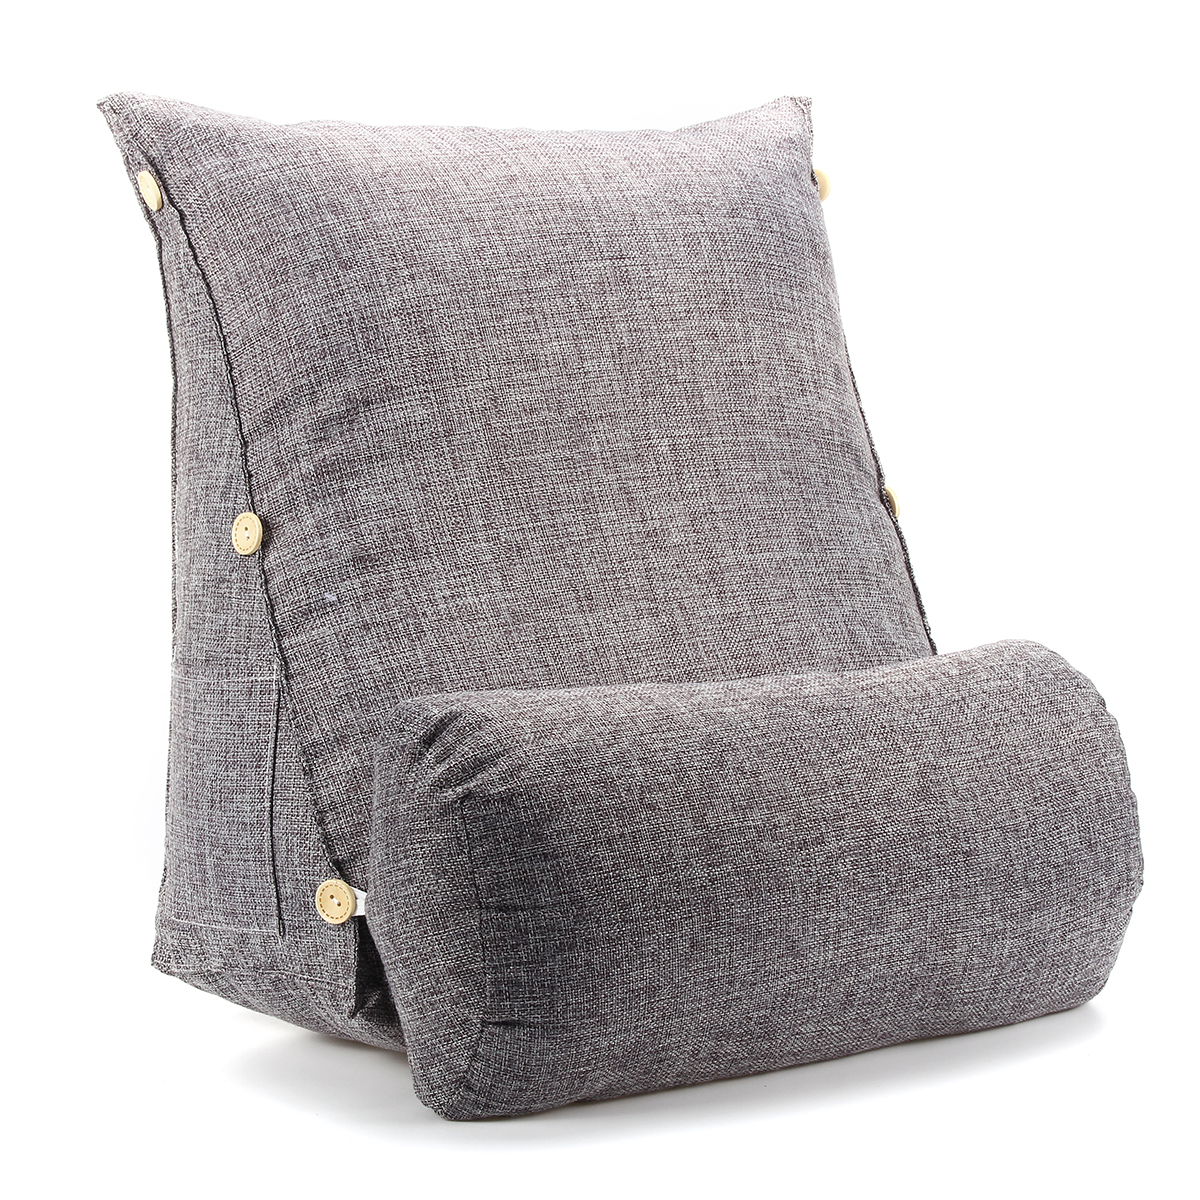 Picture of: Adjustable Wedge Cotton Back Cushion Pillow Office Sofa Bed Backrest Waist Support Smoke Grey Size 18 X18 X8 Walmart Com Walmart Com